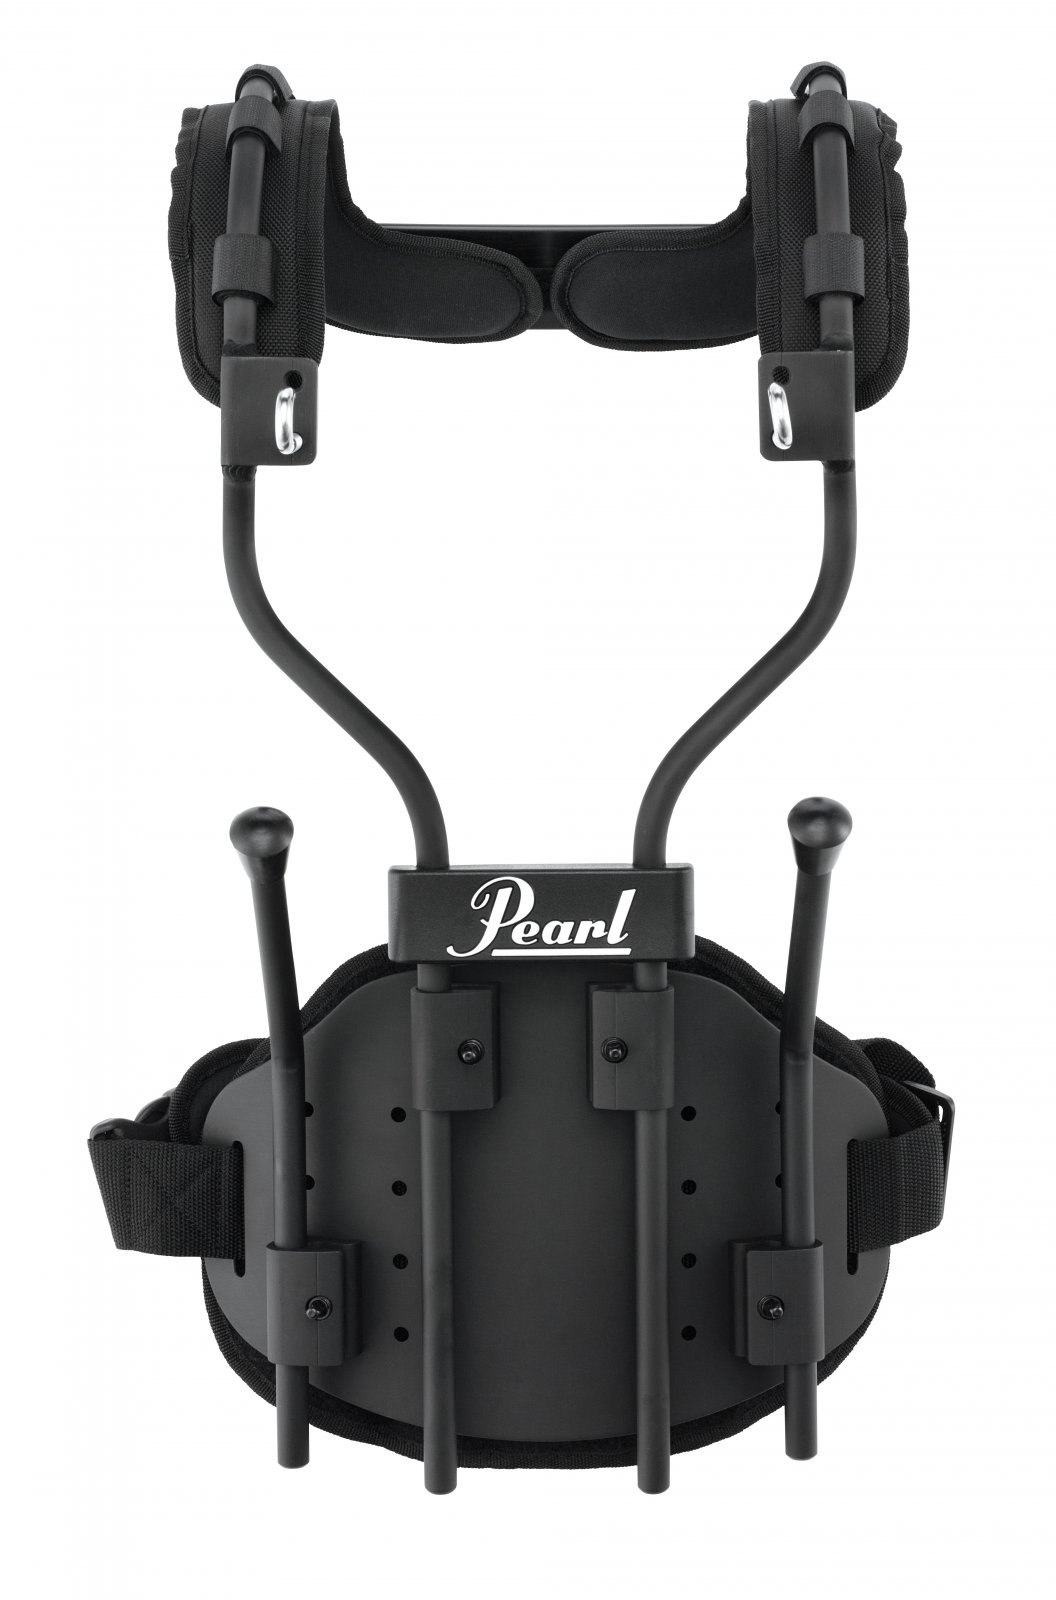 Pearl CX Airframe Bass Drum Carrier